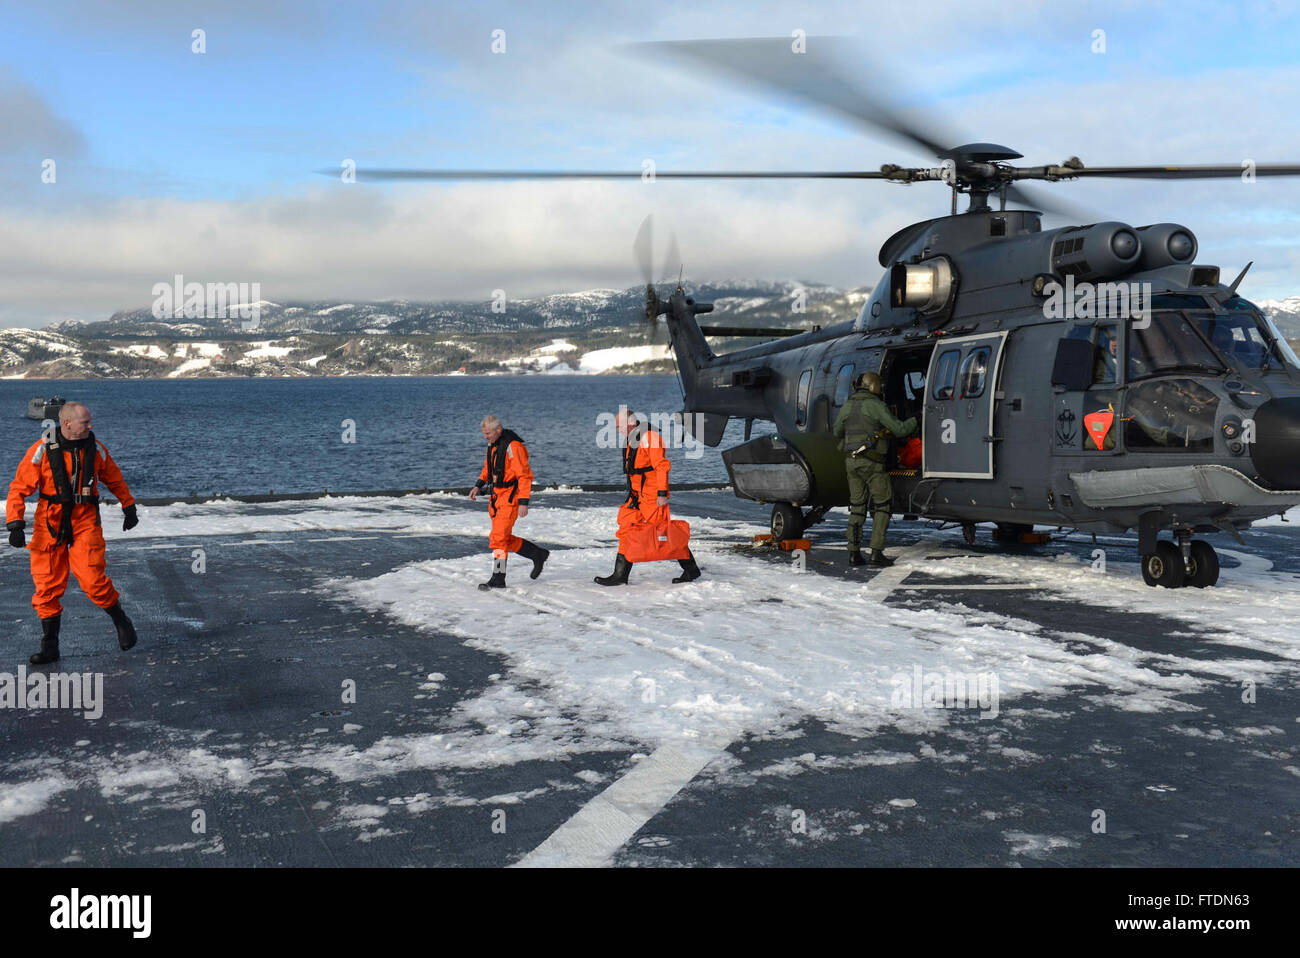 160308-N-AH771-173 NAMSOS FJORD, Norway (March 8, 2016) Dutch Naval officers come aboard the Whidbey Island-class Stock Photo